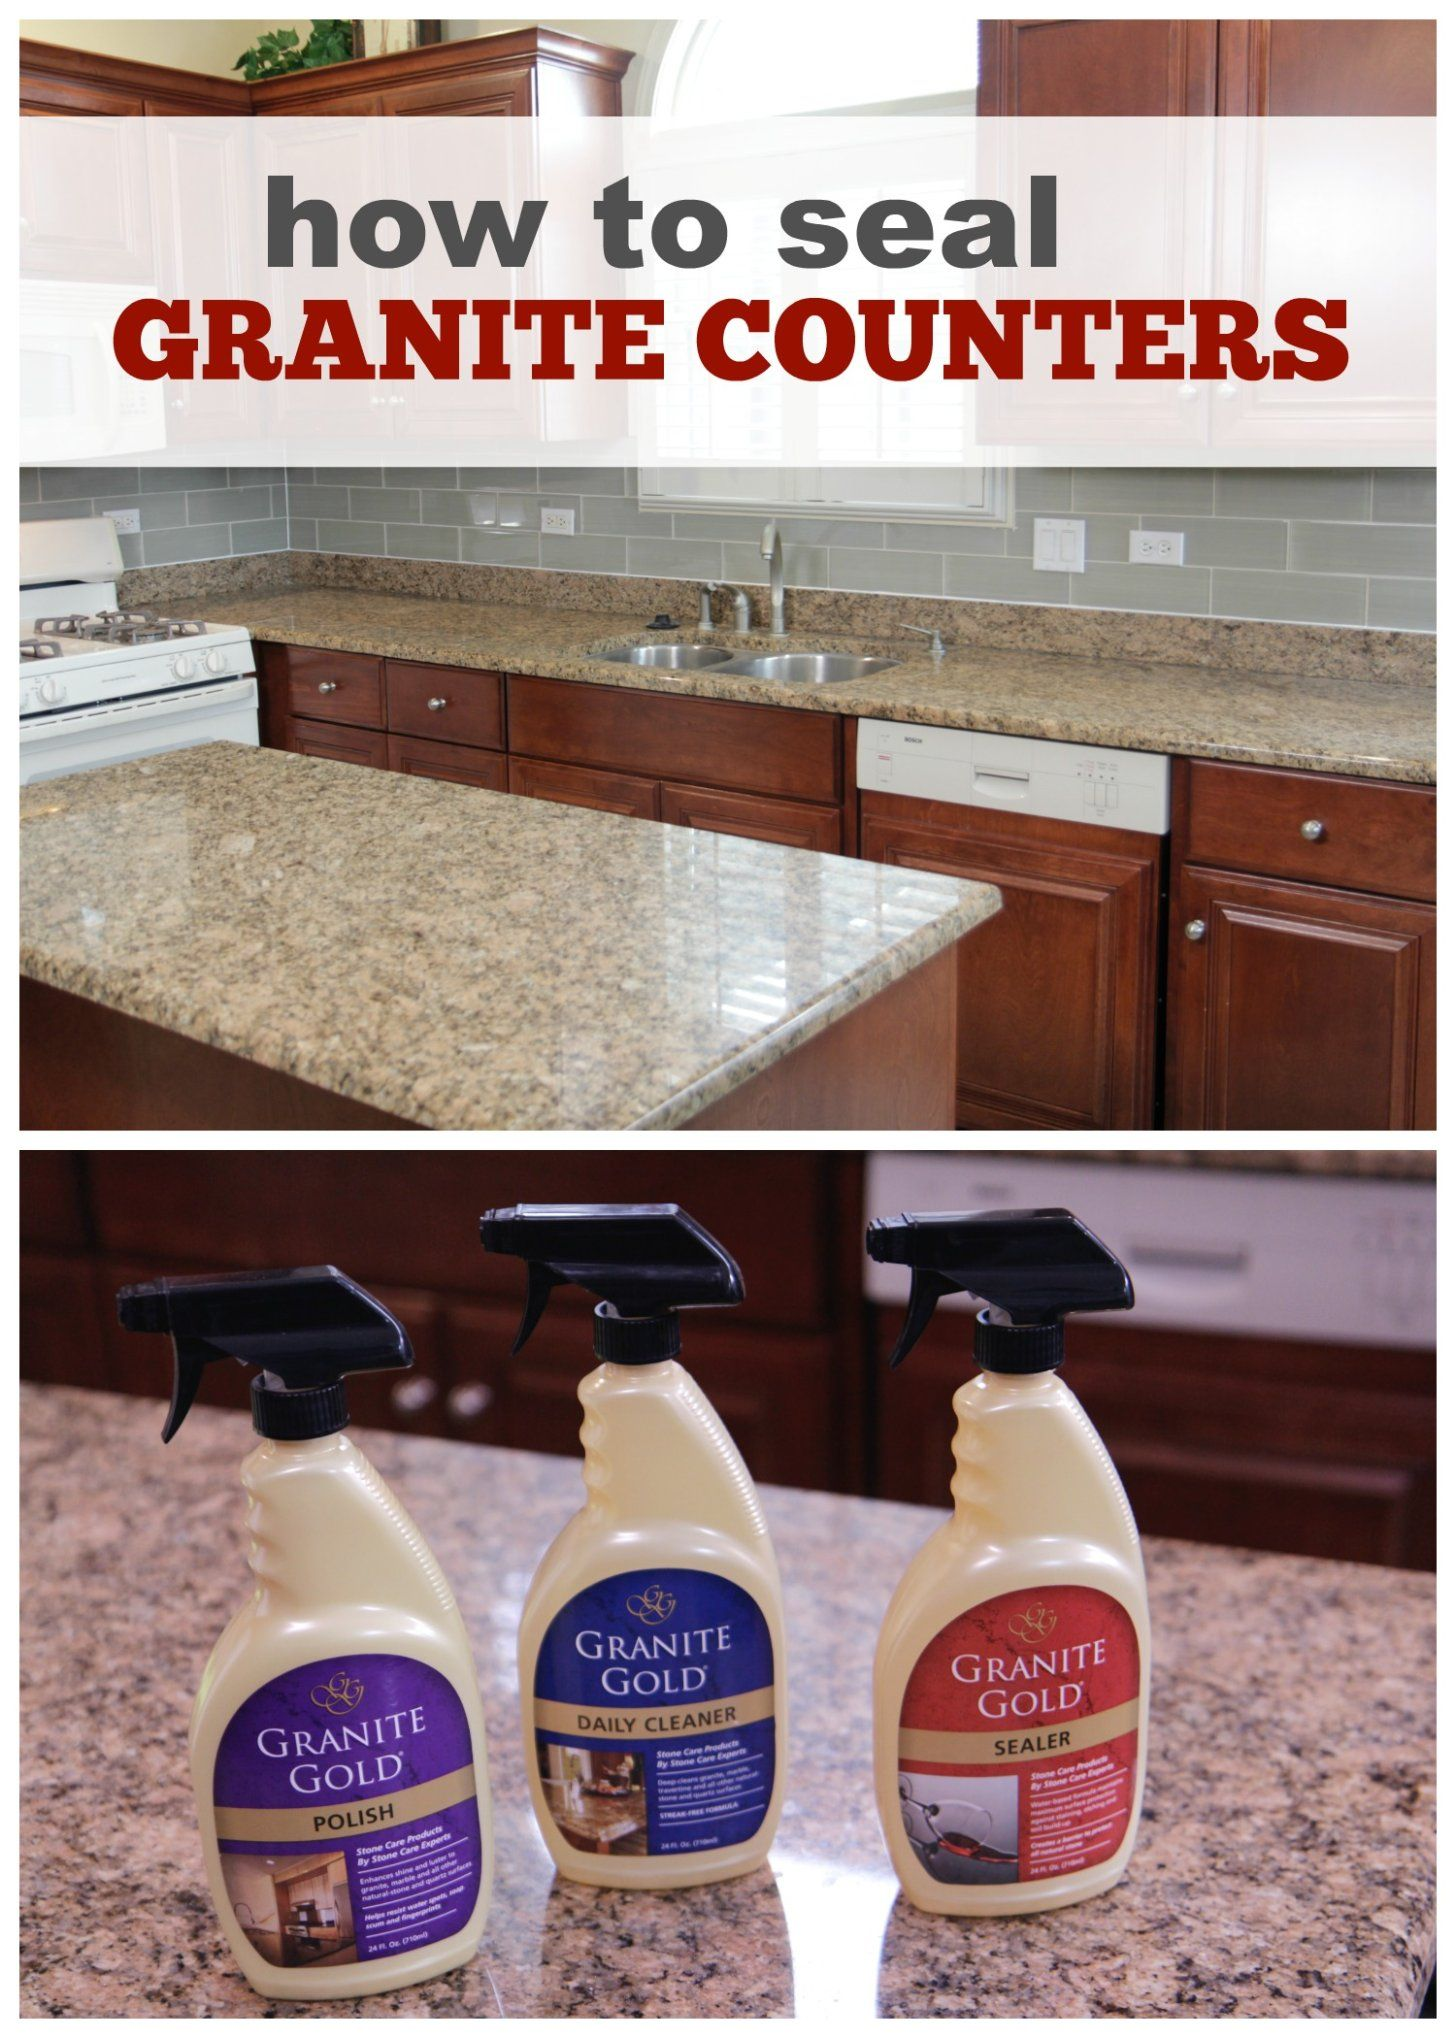 Seal Clean Polish Granite Countertops Wgn Tv How To Clean Granite Cleaning Granite Countertops Sealing Granite Countertops